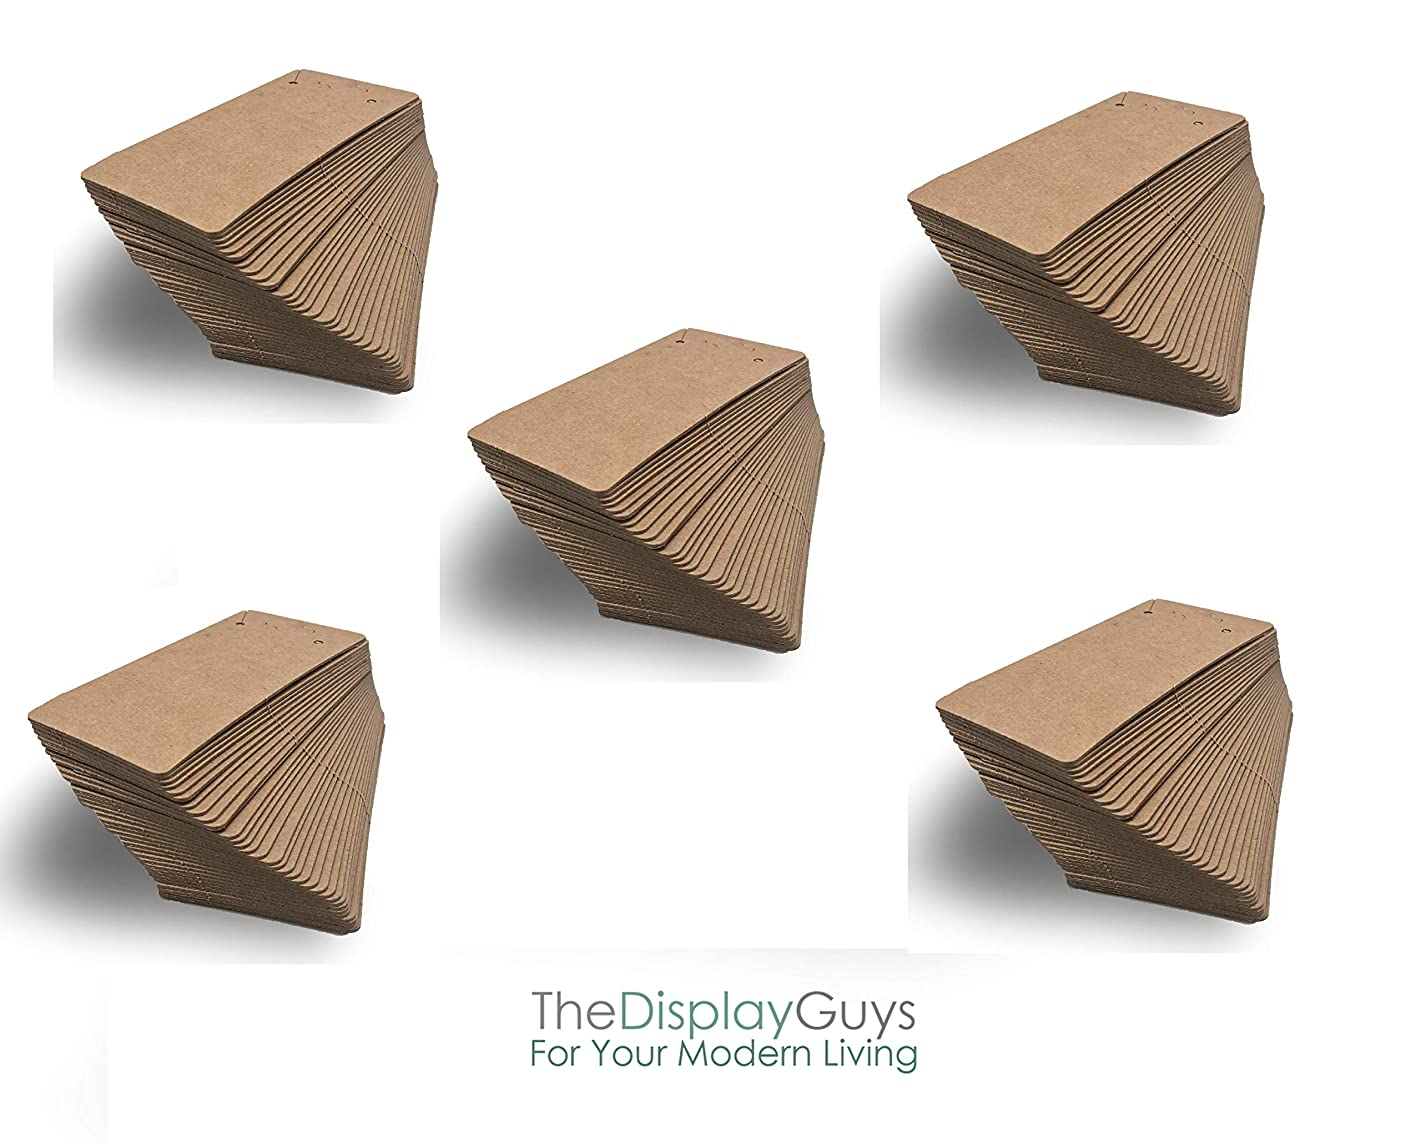 THE DISPLAY GUYS Pack of 500 pcs 2x4 inch (5cmx10xm) Kraft Paper Necklace Display Hanging Cards Jewelry Accessory Display